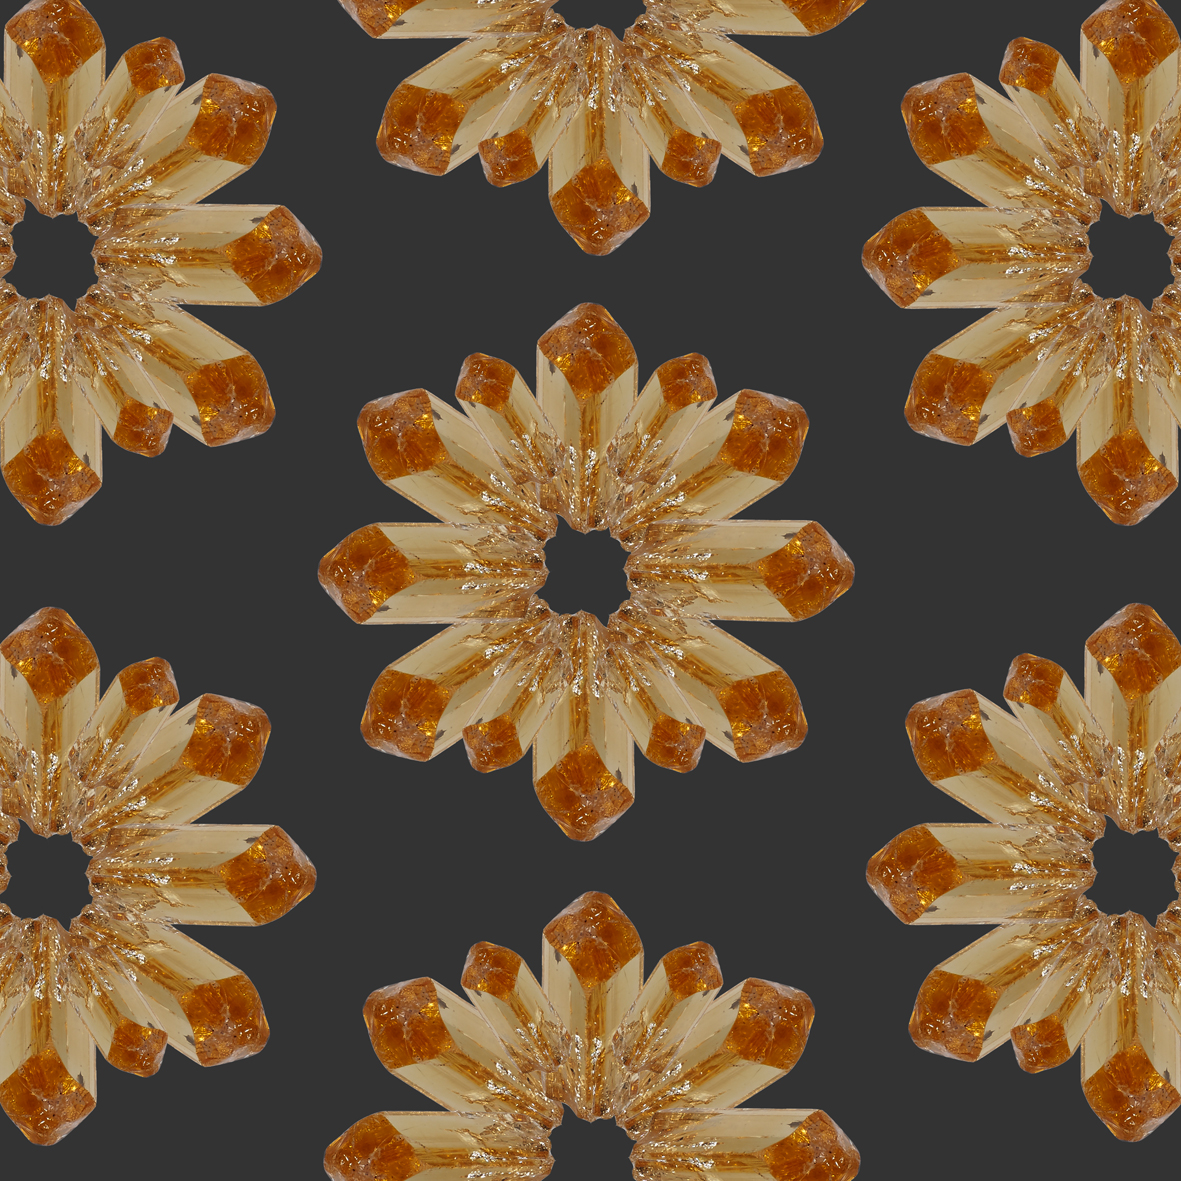 Imperial Topaz pattern using the exact same crystal we used in the ring